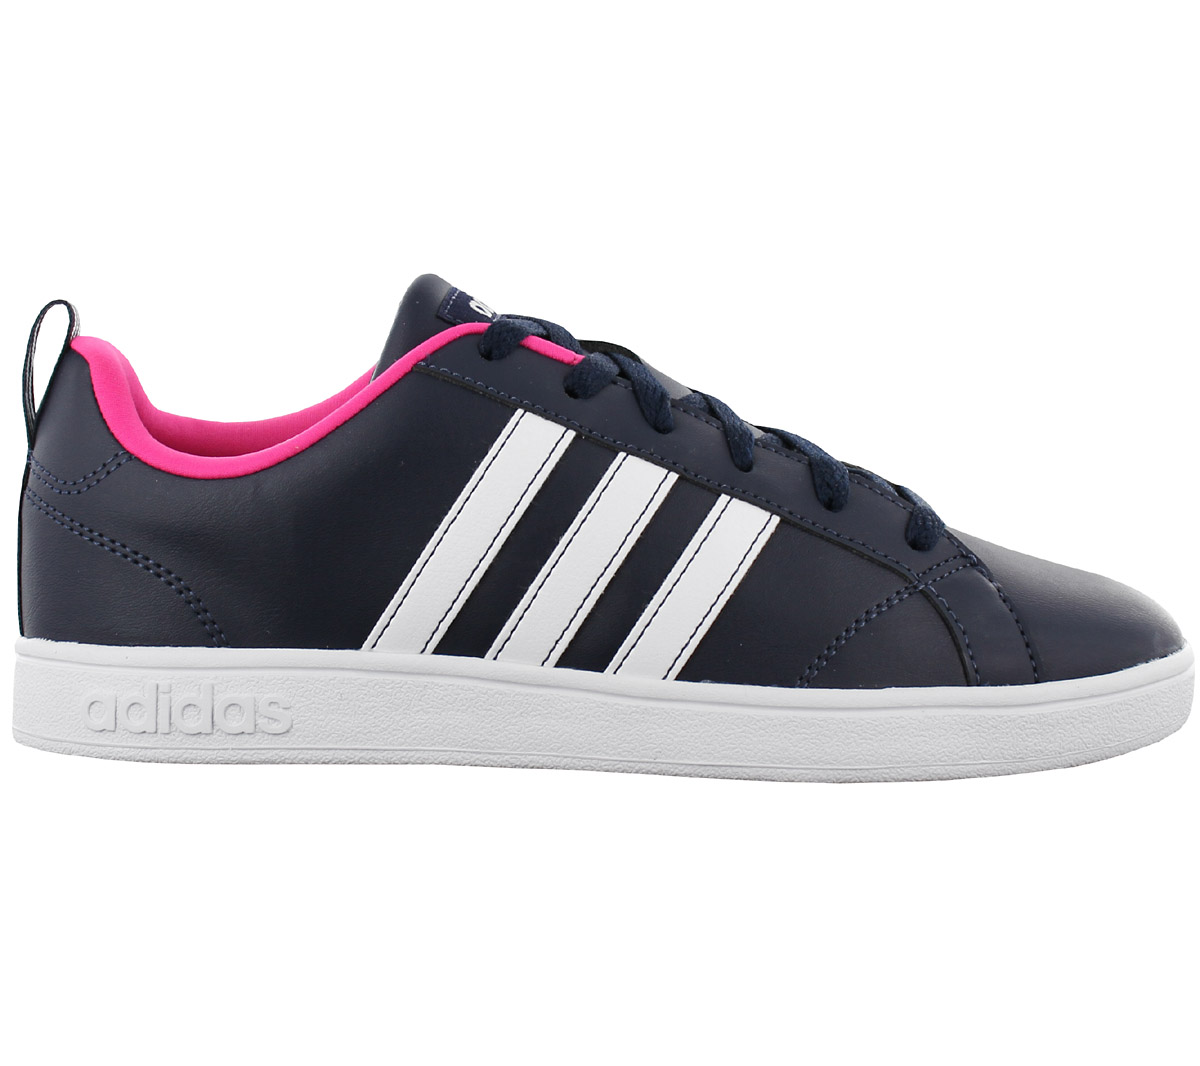 Details about Adidas Advantage vs W Women's Sneaker AW4792 Shoes Navy Blue  Fashion Trainers